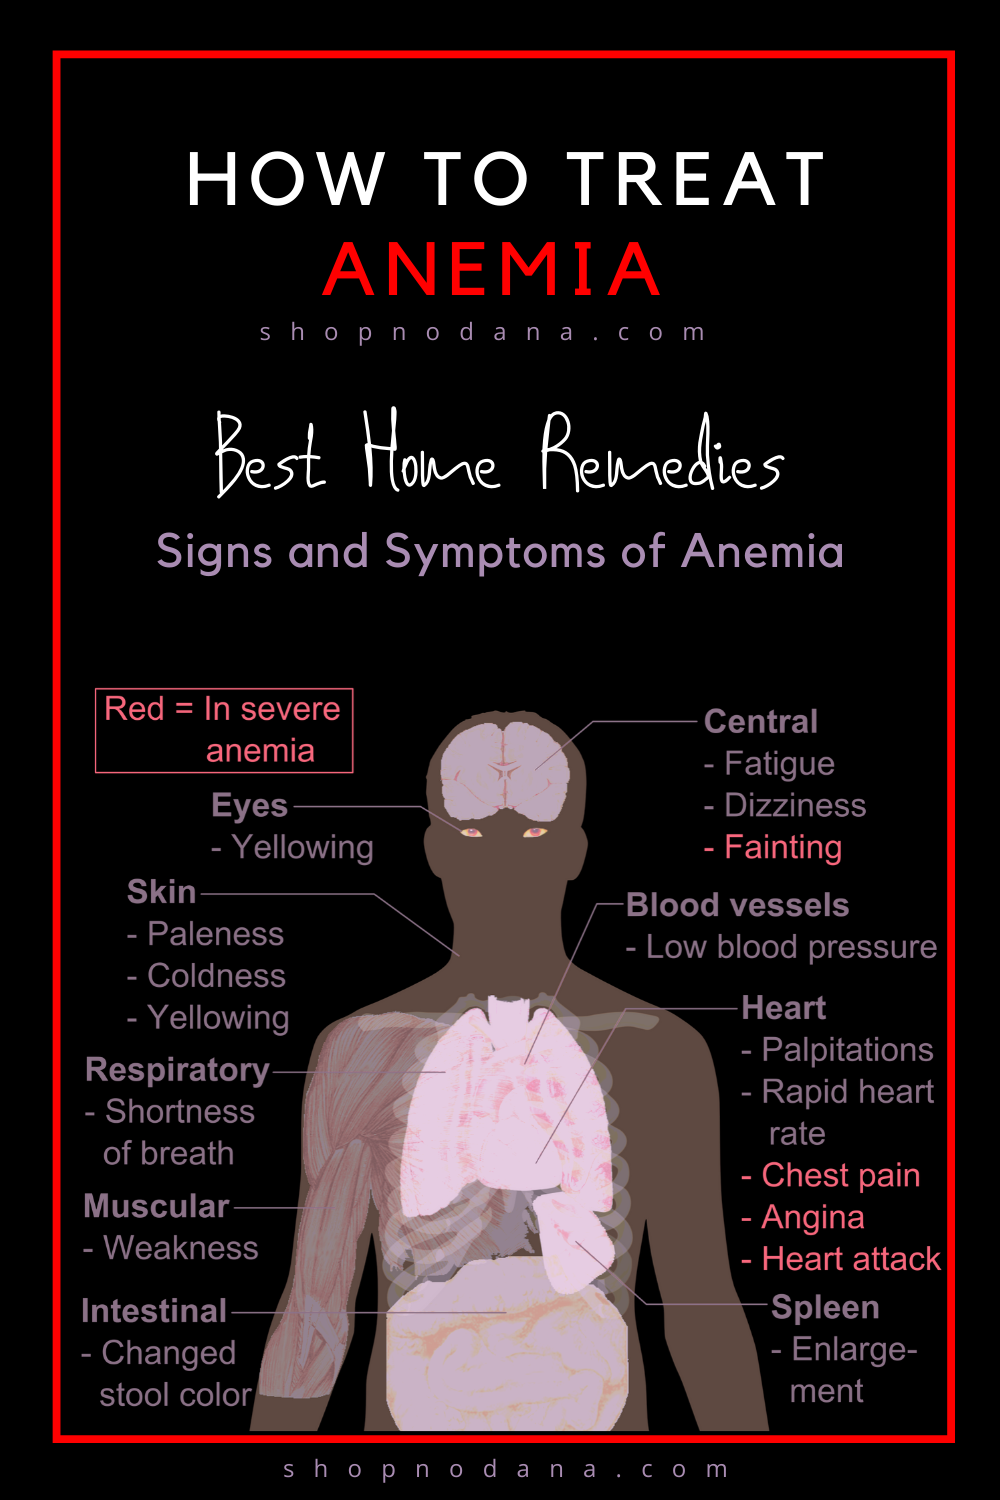 How to treat Anemia- Signs and Symptoms of Anemia